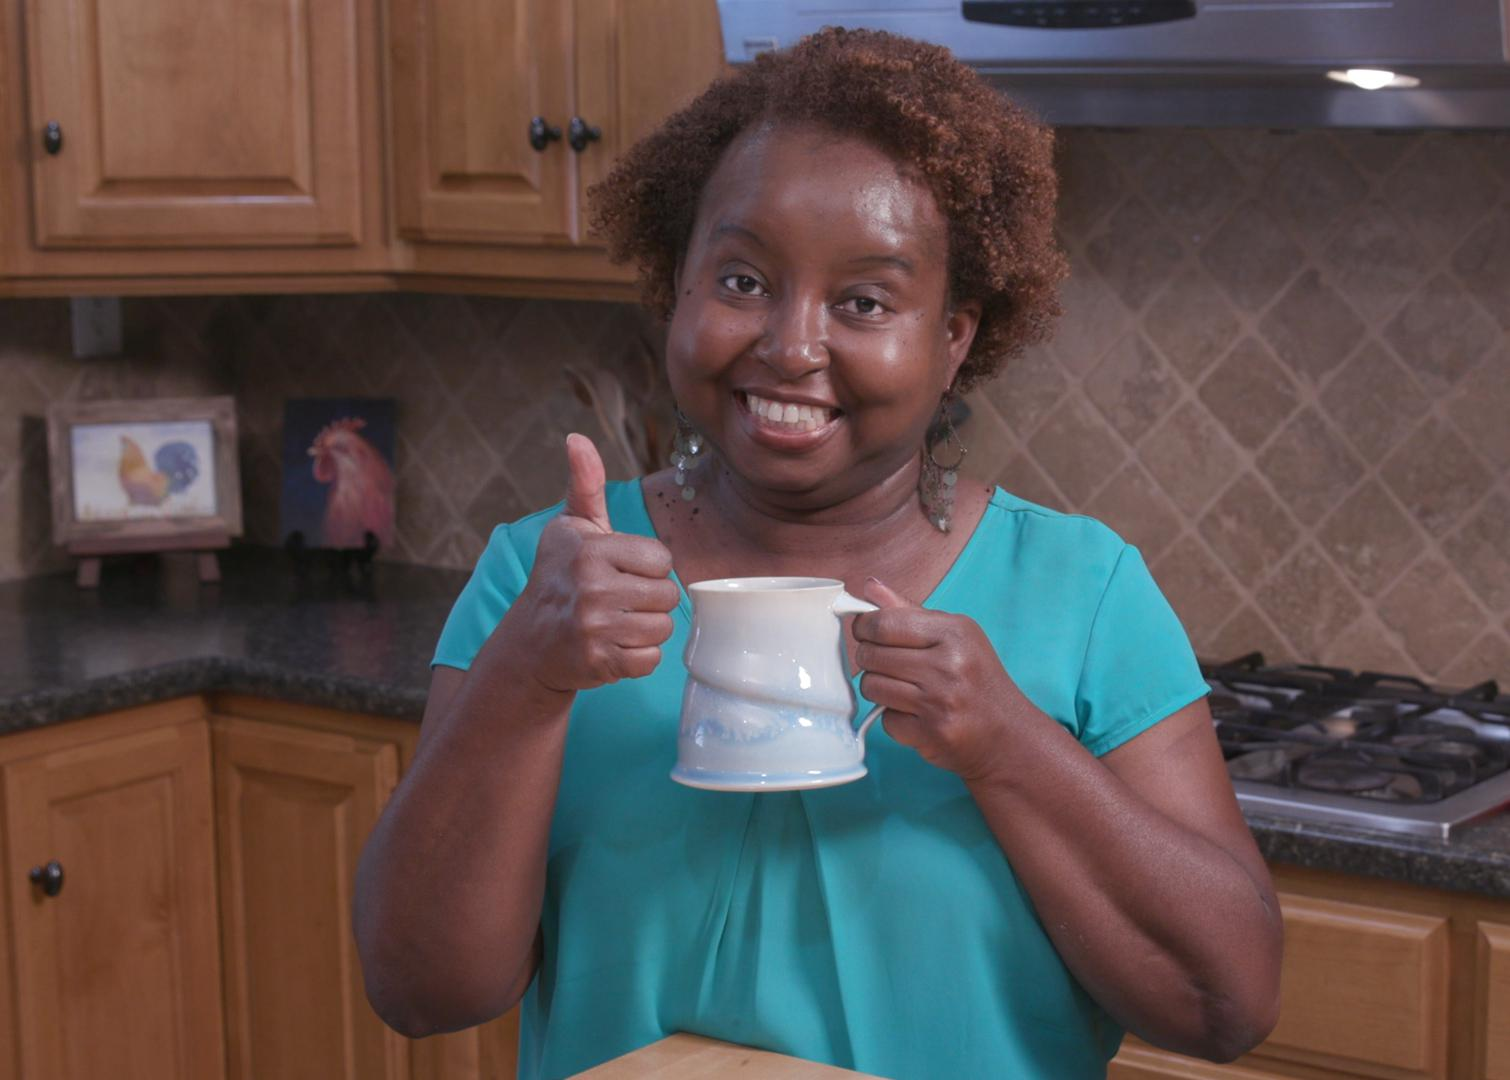 Food Factor host Natasha Haynes holds a mug of cocoa while standing in a kitchen